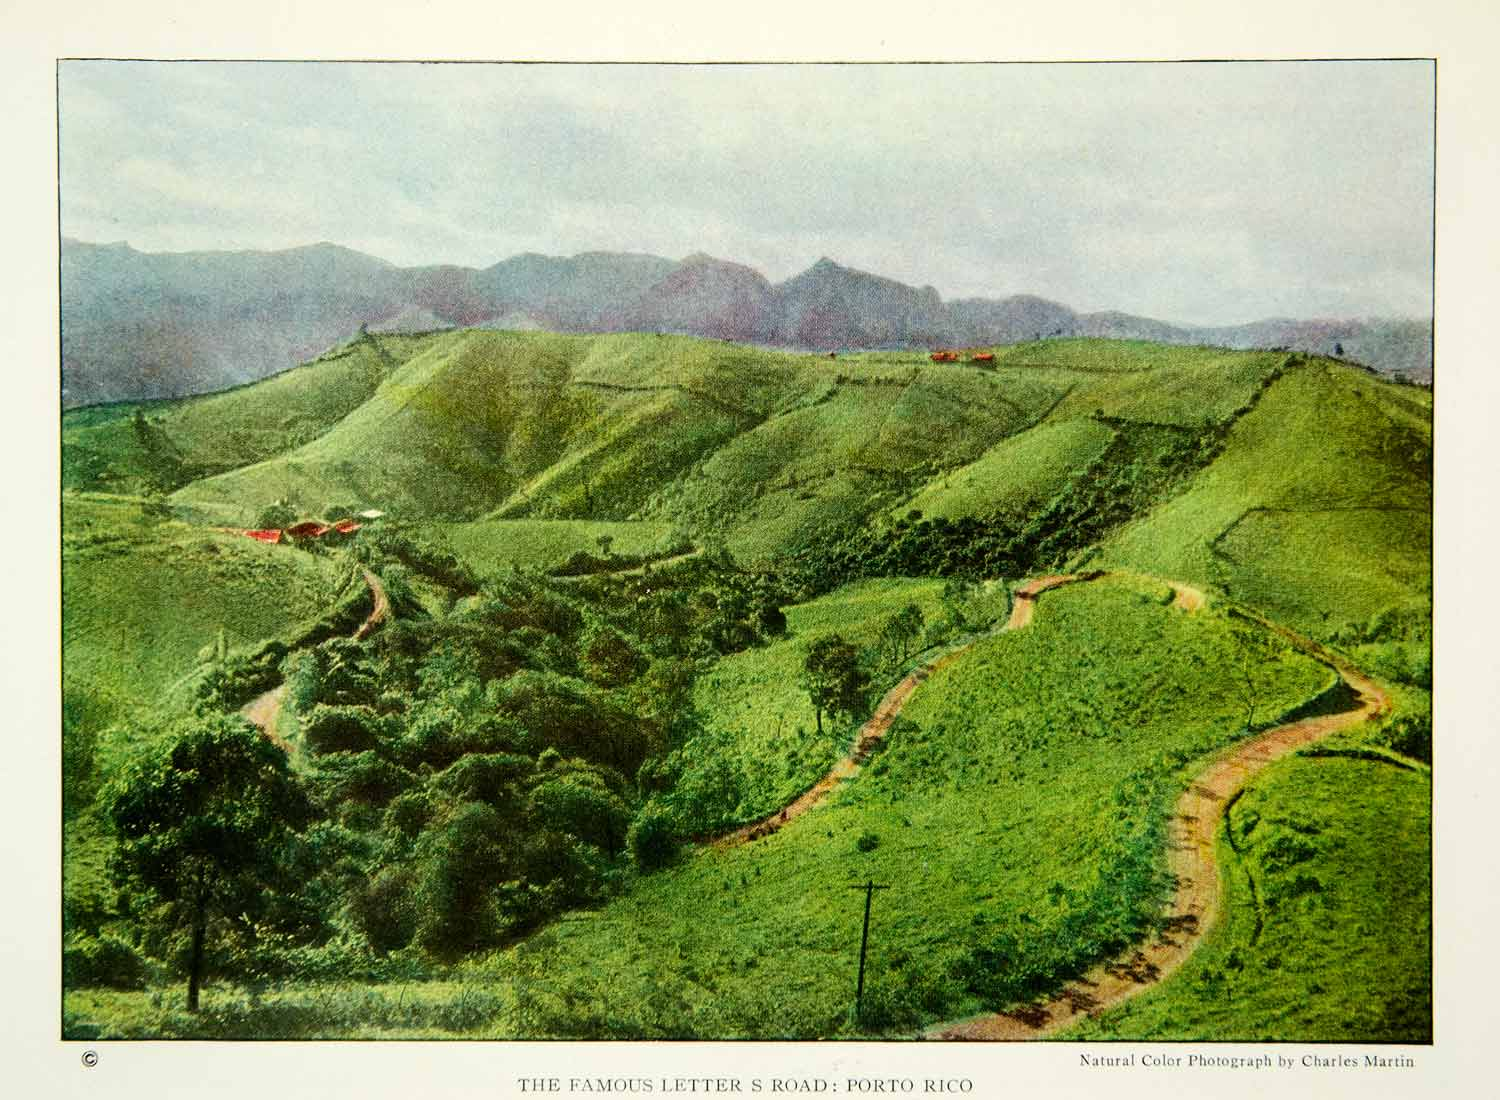 1924 Color Print Letter S Road Puerto Rico Landscape Historical Image Trees NGM9